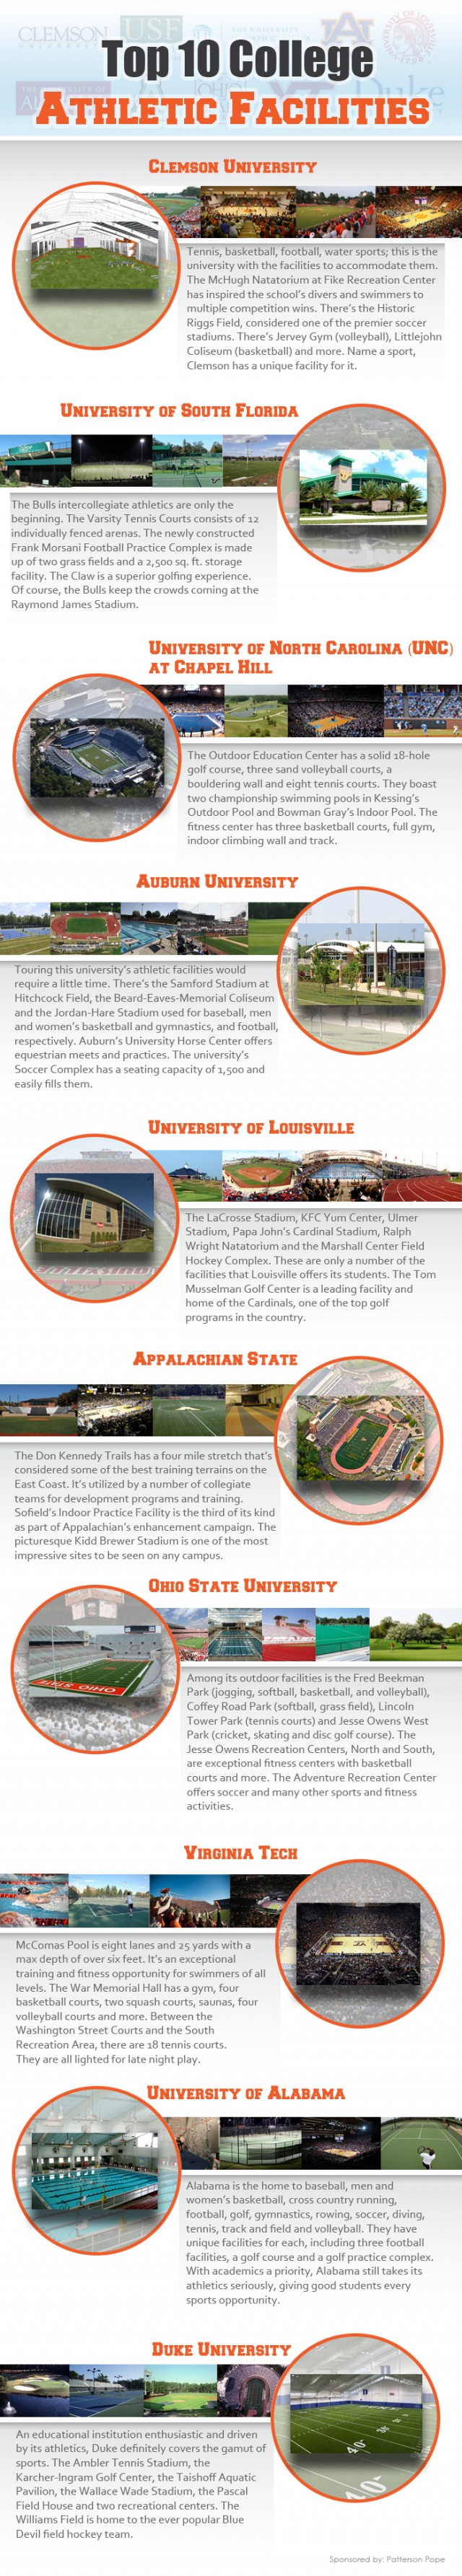 Best College Athletic Facilities